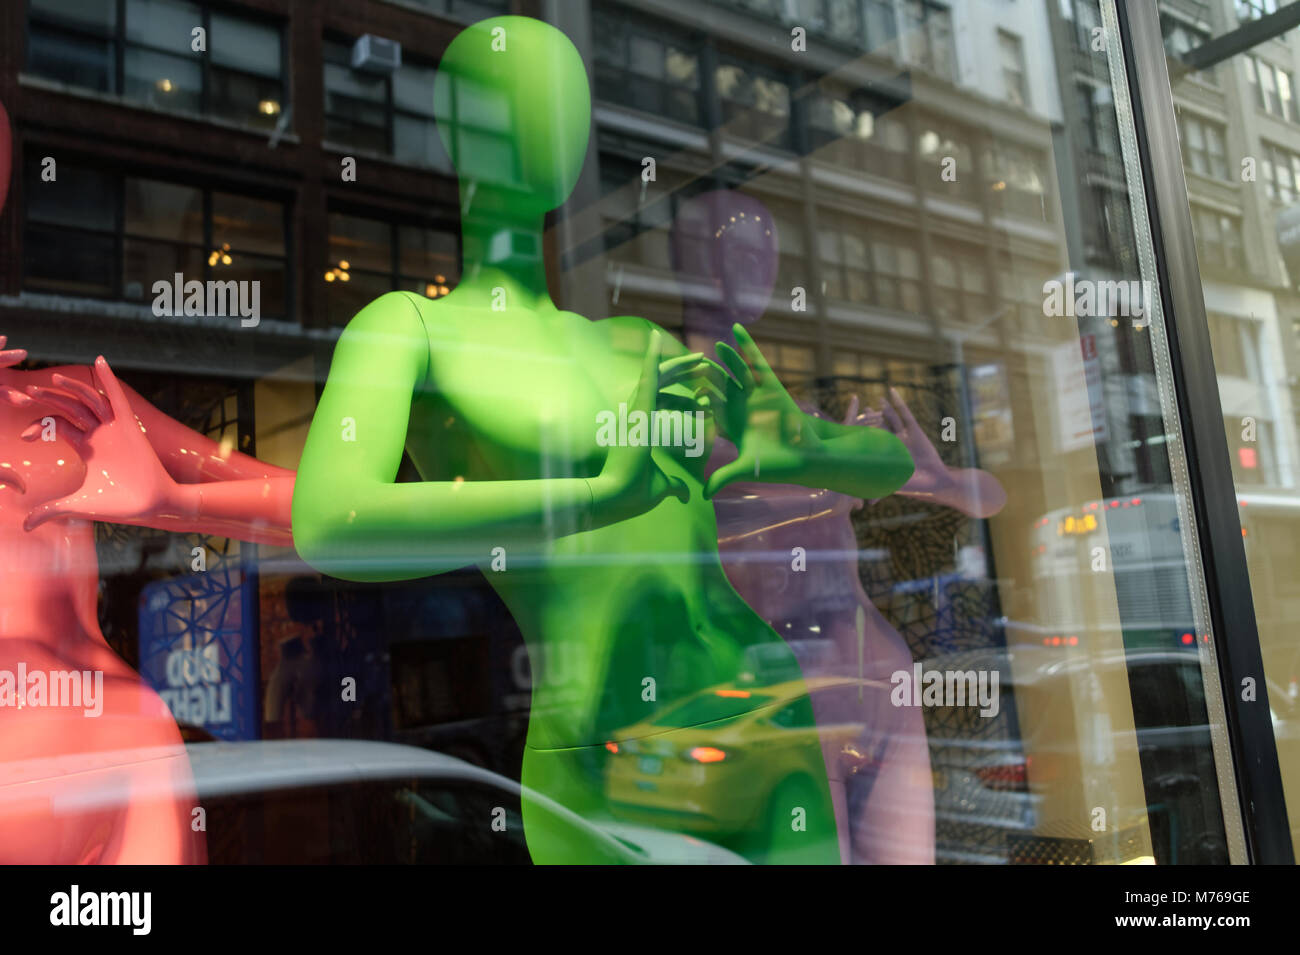 Bare bal colorful mannequins on a window display with reflection. - Stock Image